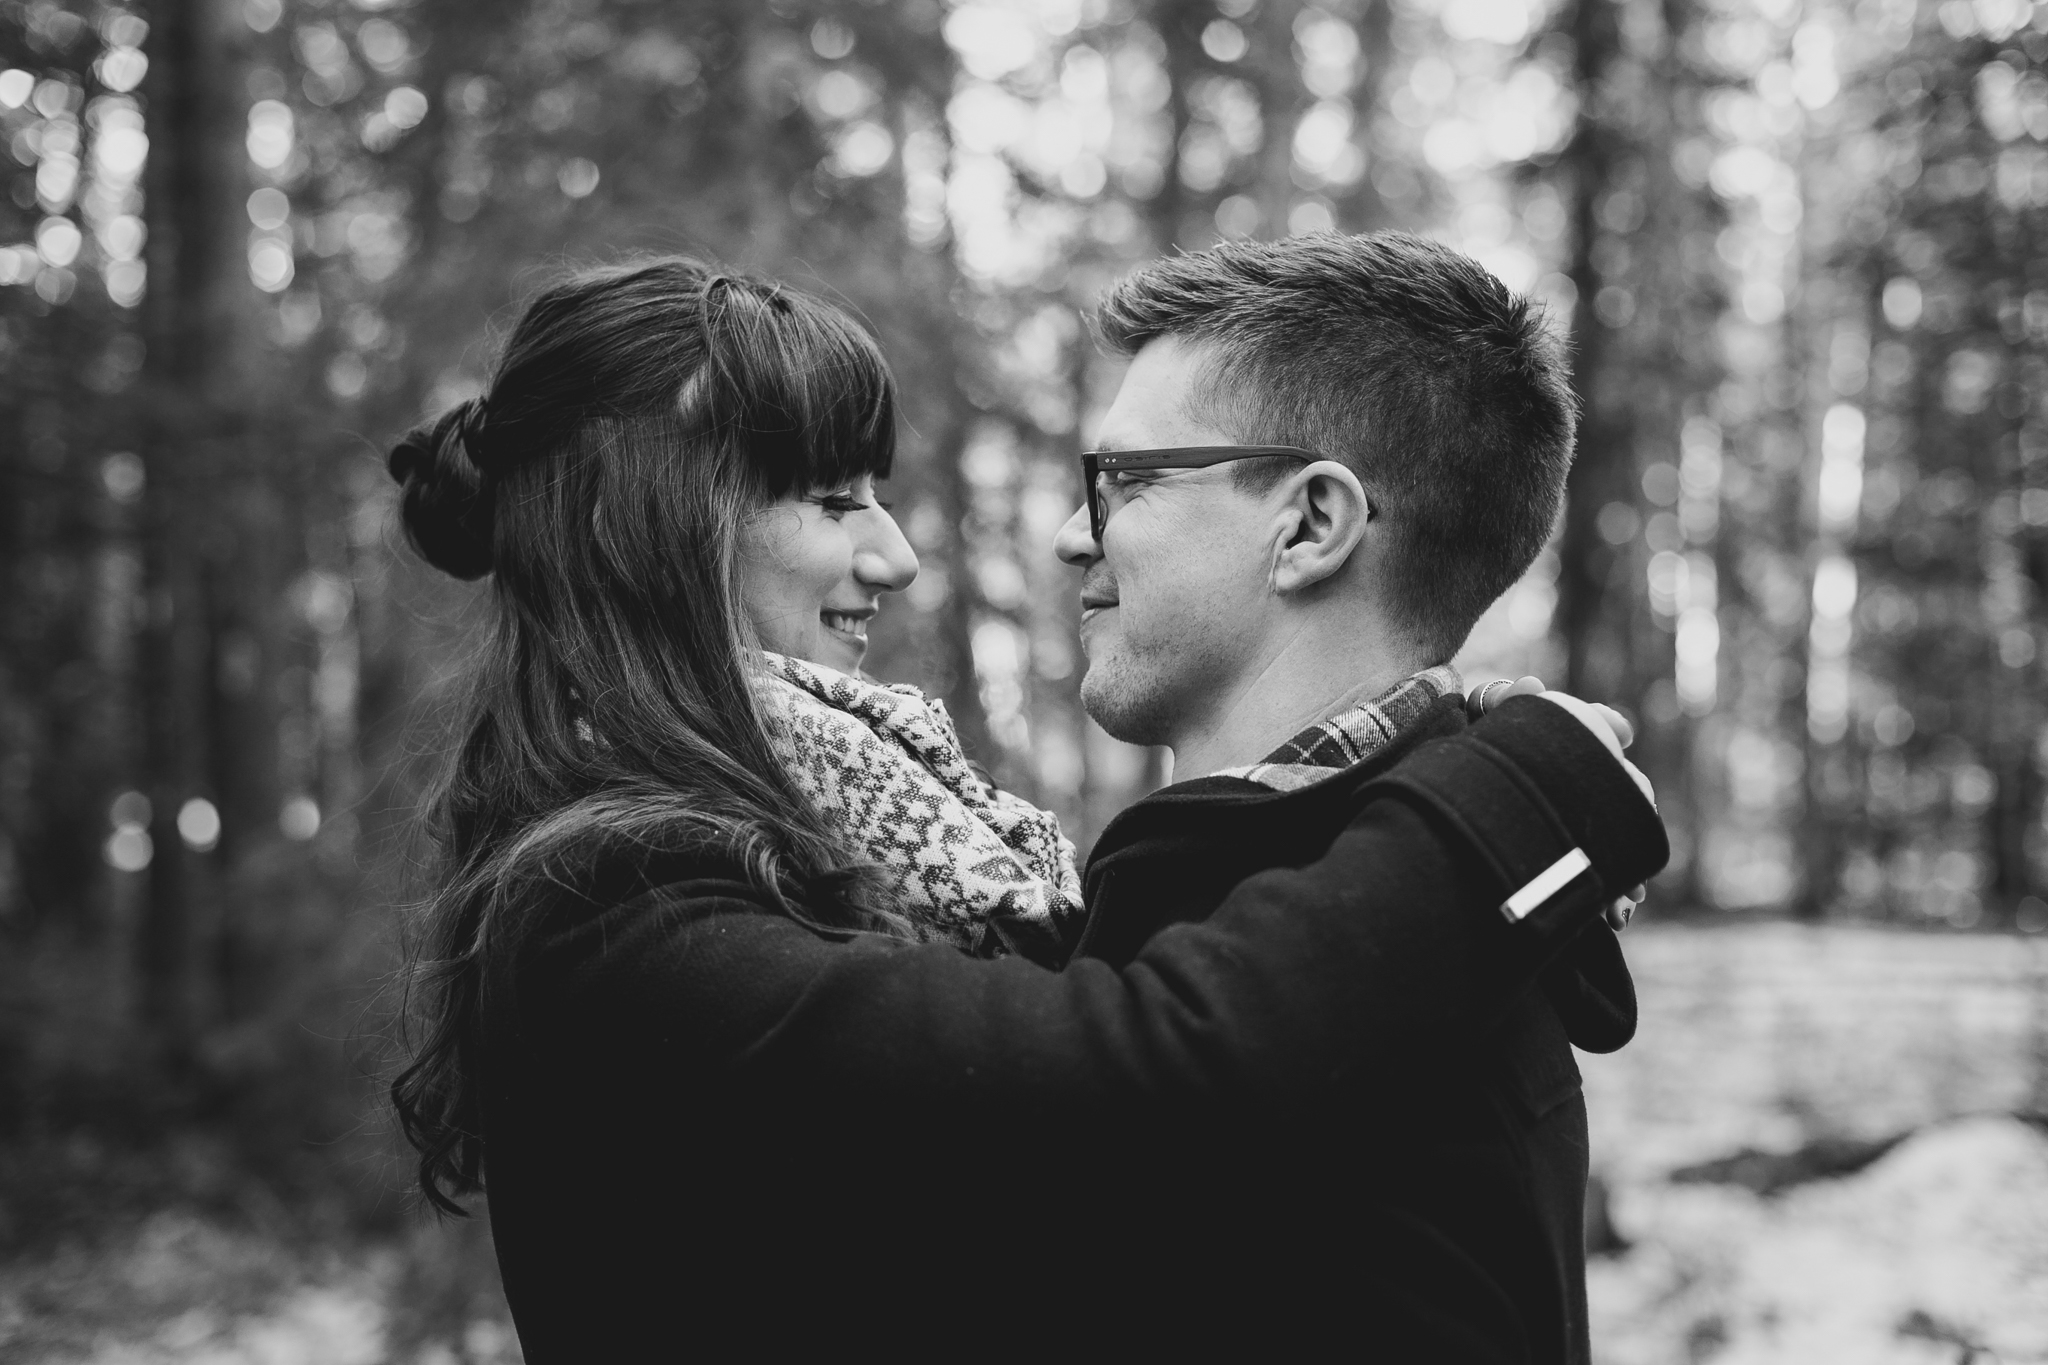 elbow-falls-calgary-photographer-banff-love-and-be-loved-photography-alissia-craig-engagement-image-photo-picture-8.jpg